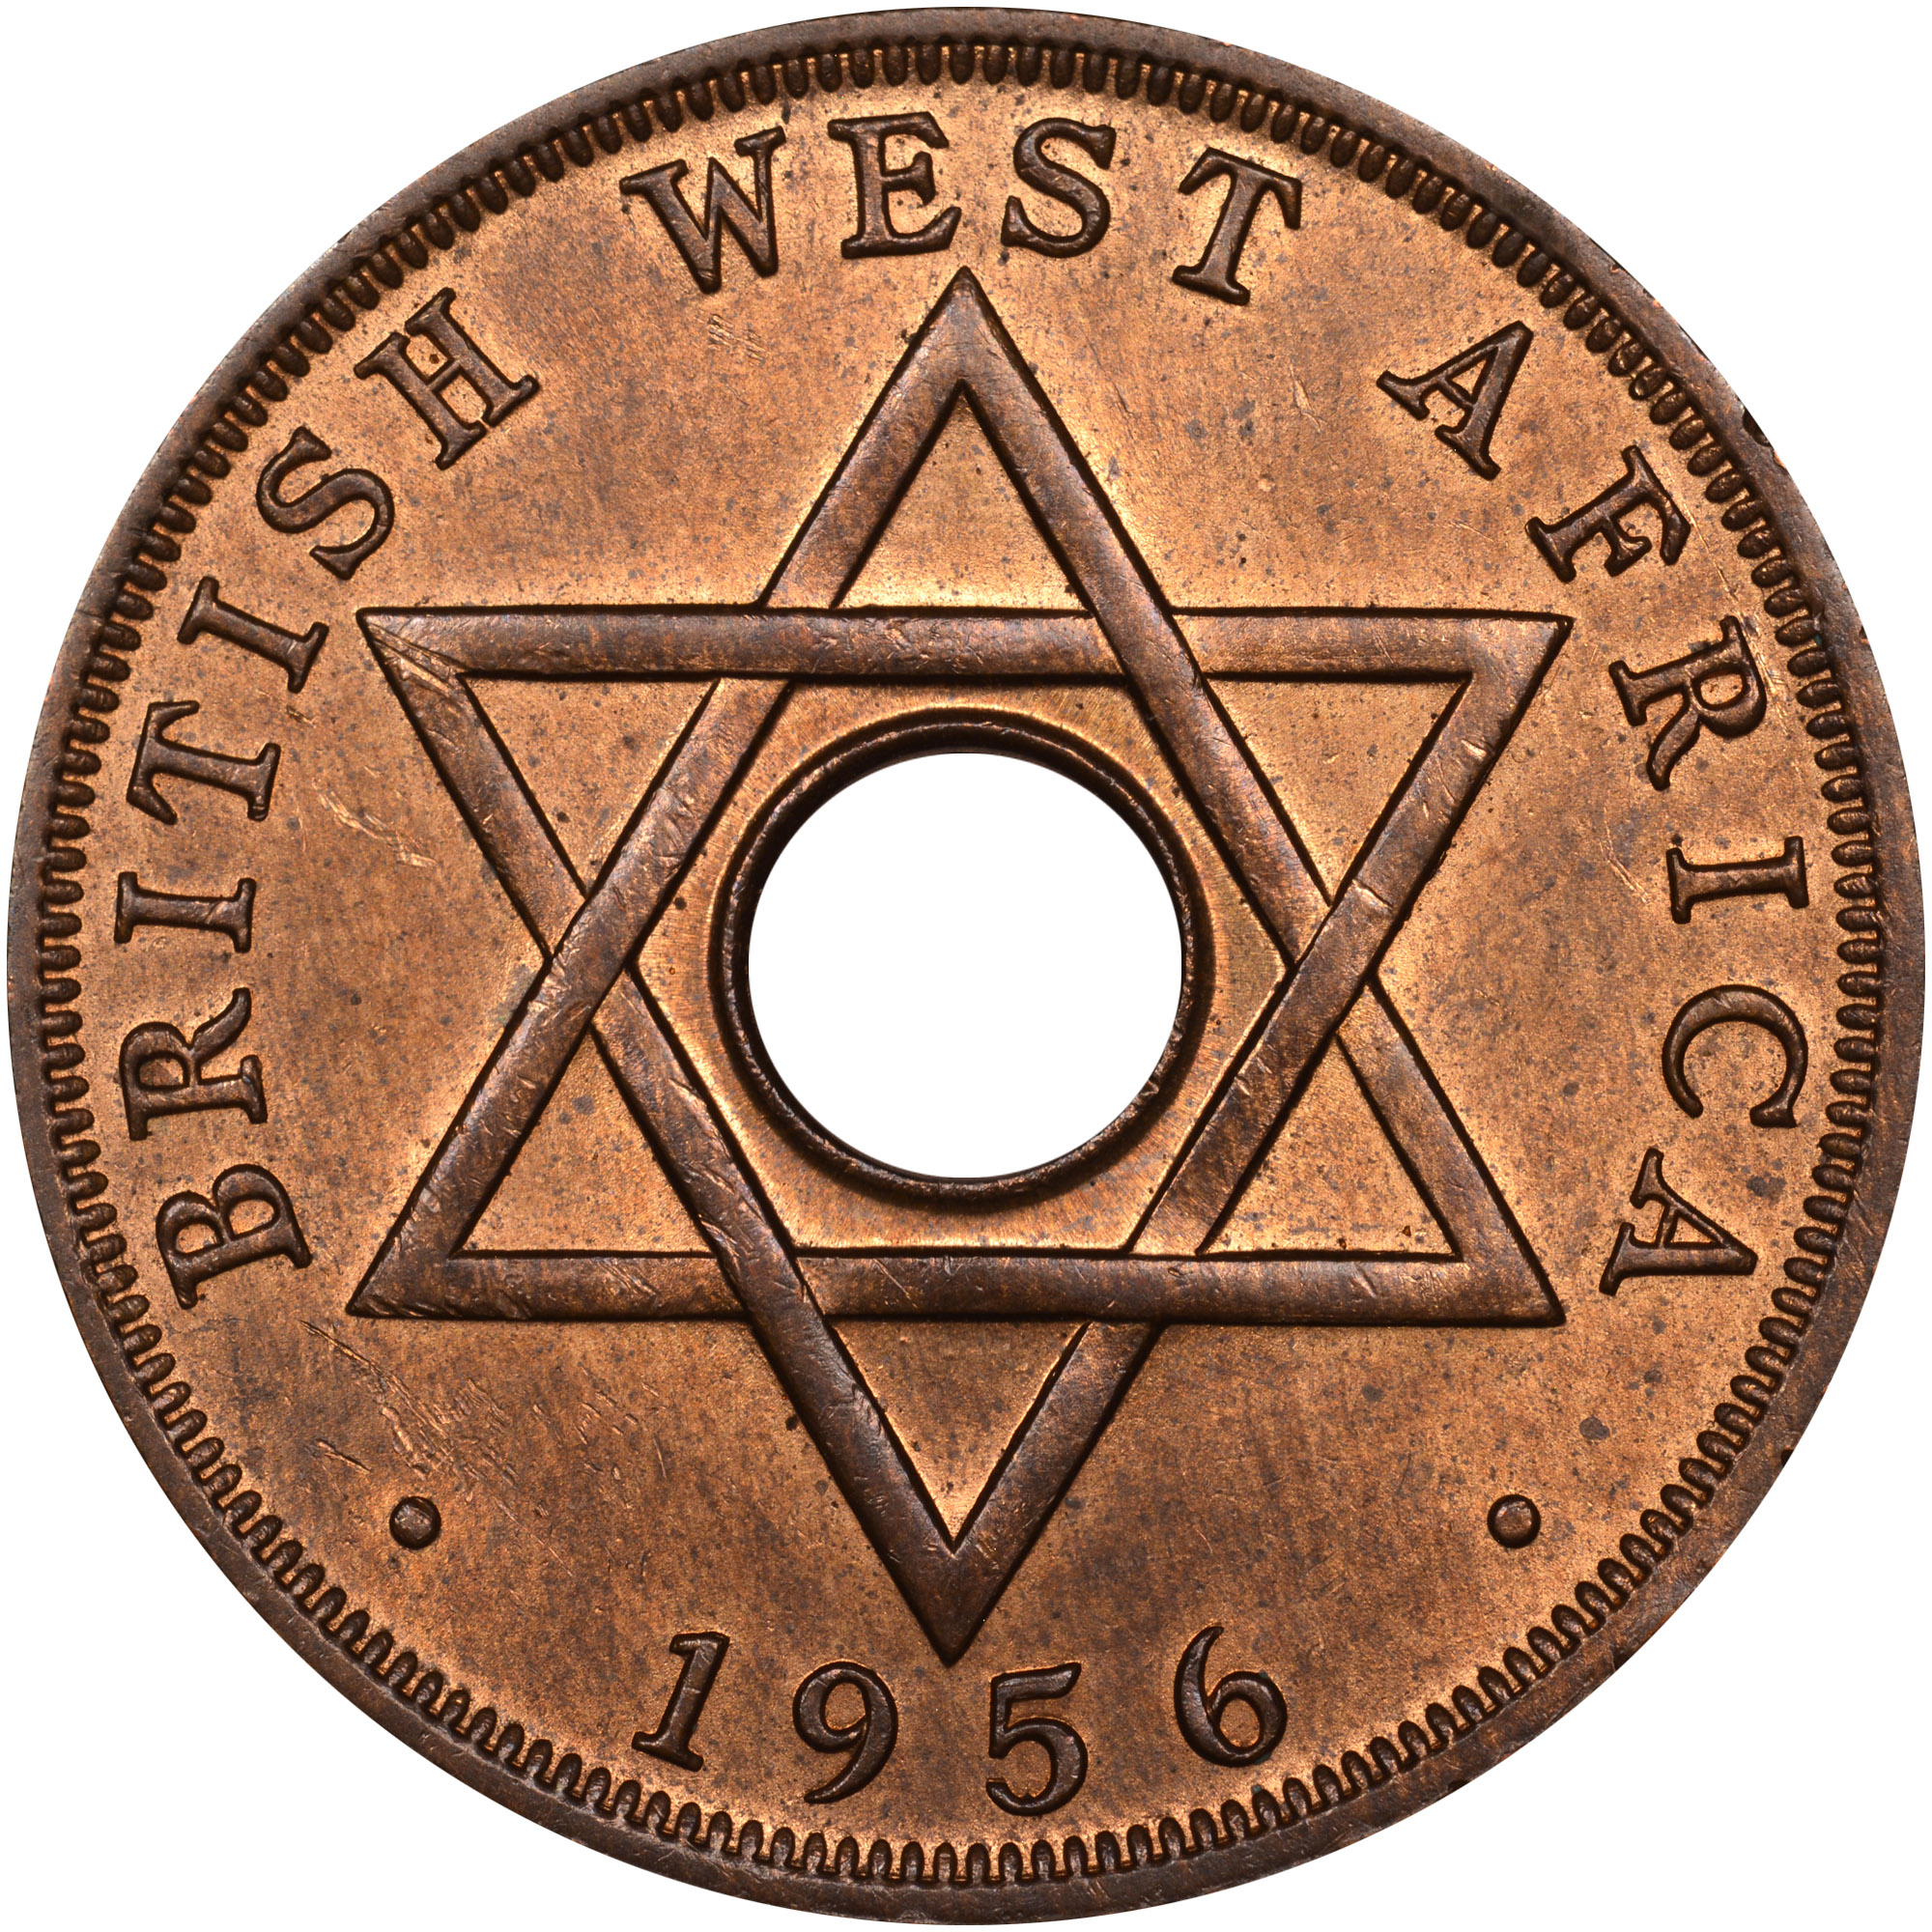 1956 British West Africa Penny reverse